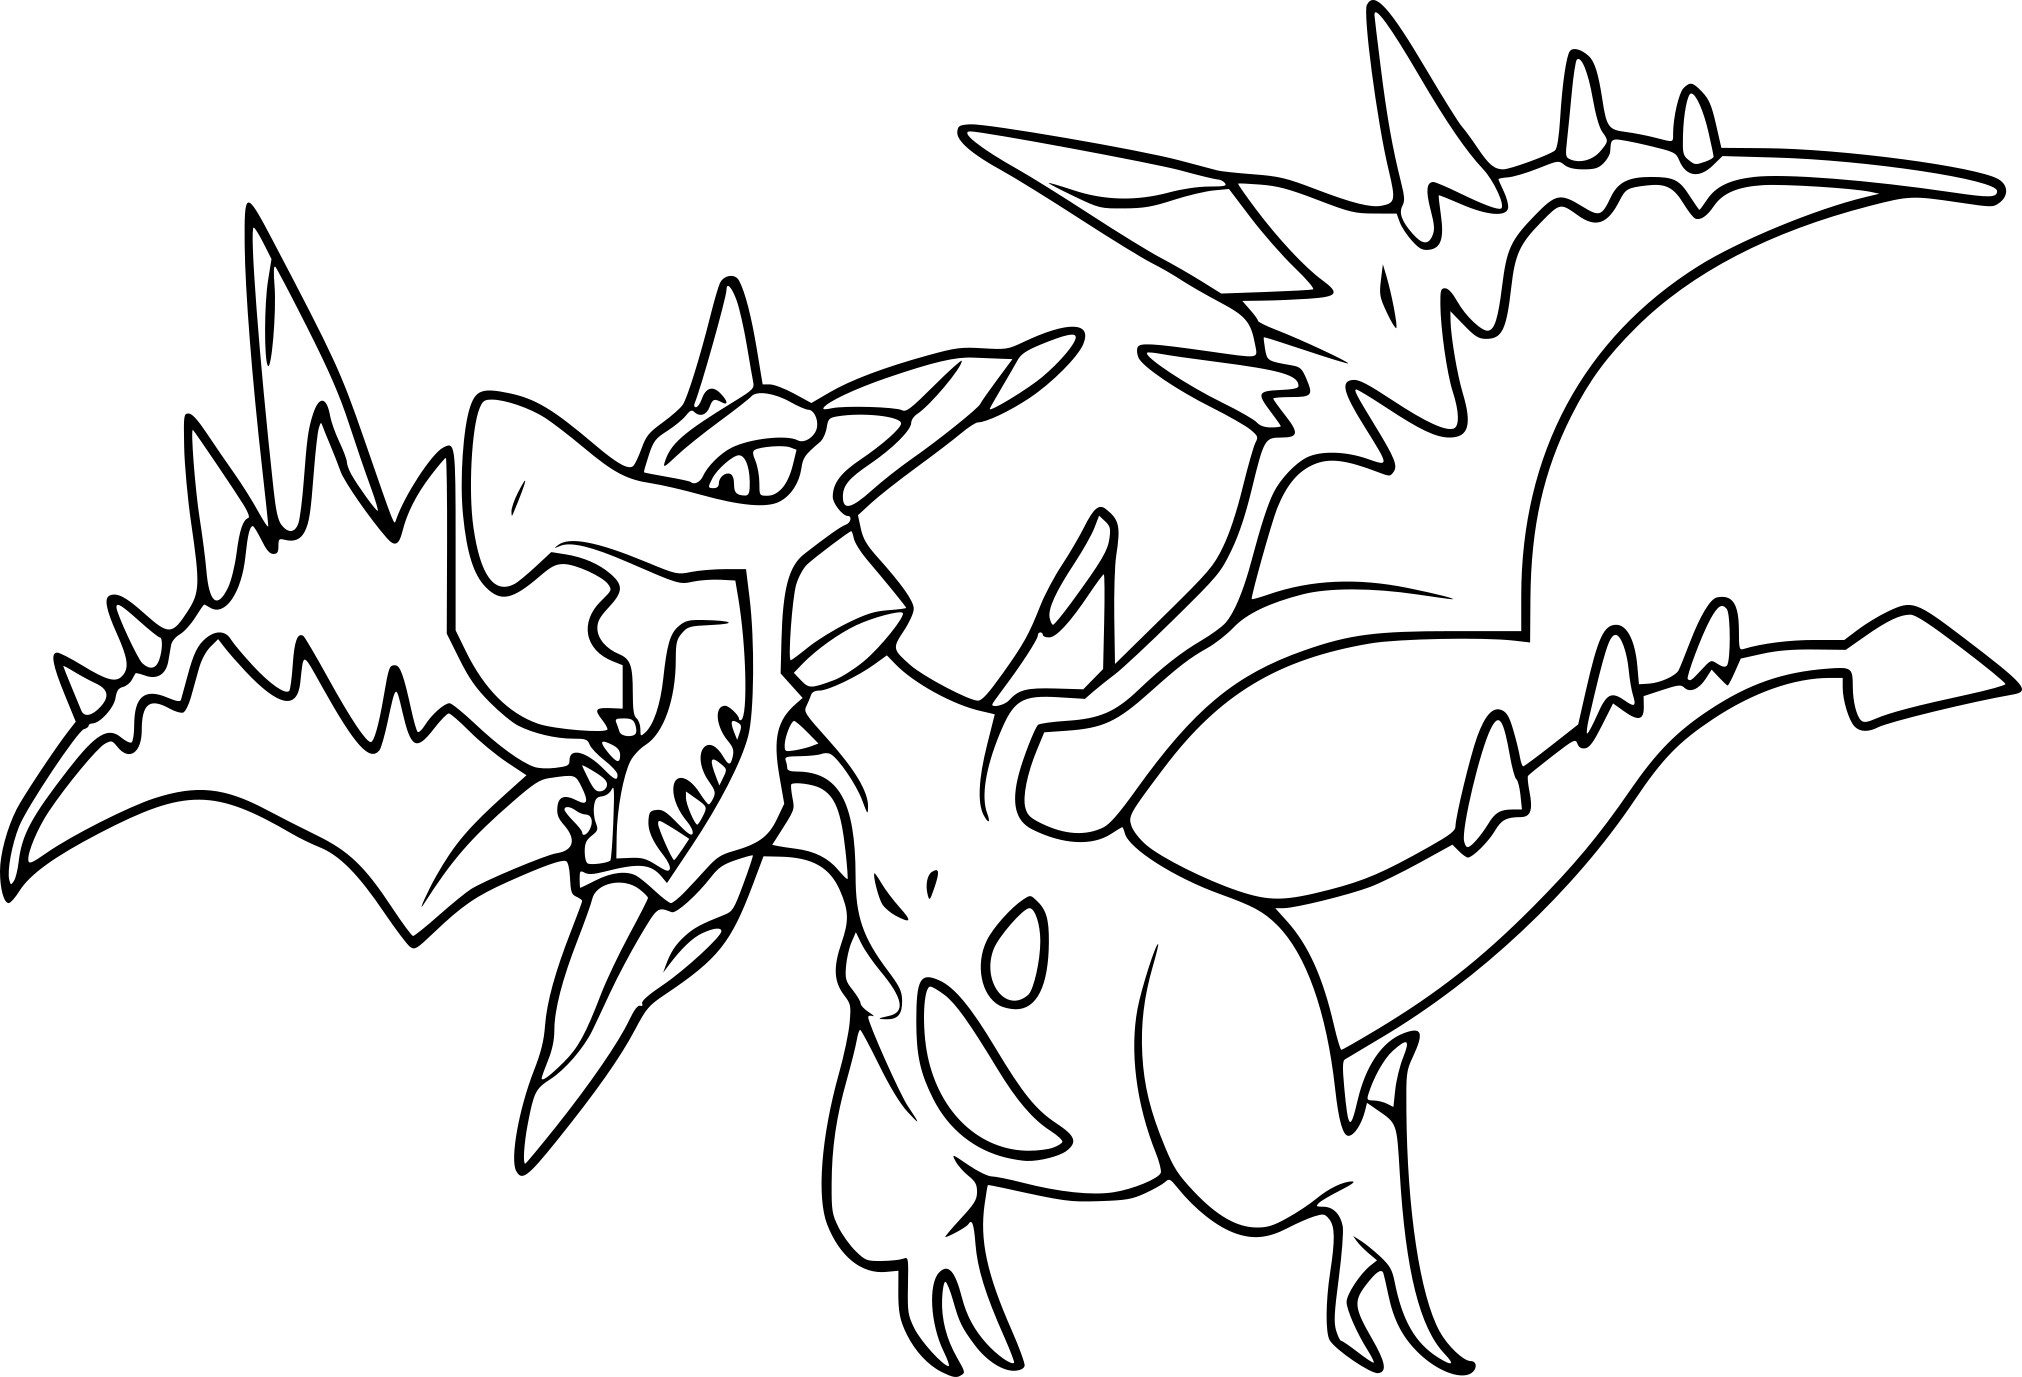 2022x1377 Unique Coloriage Pokemon Xerneas A Imprimer Mega Coloring Pages